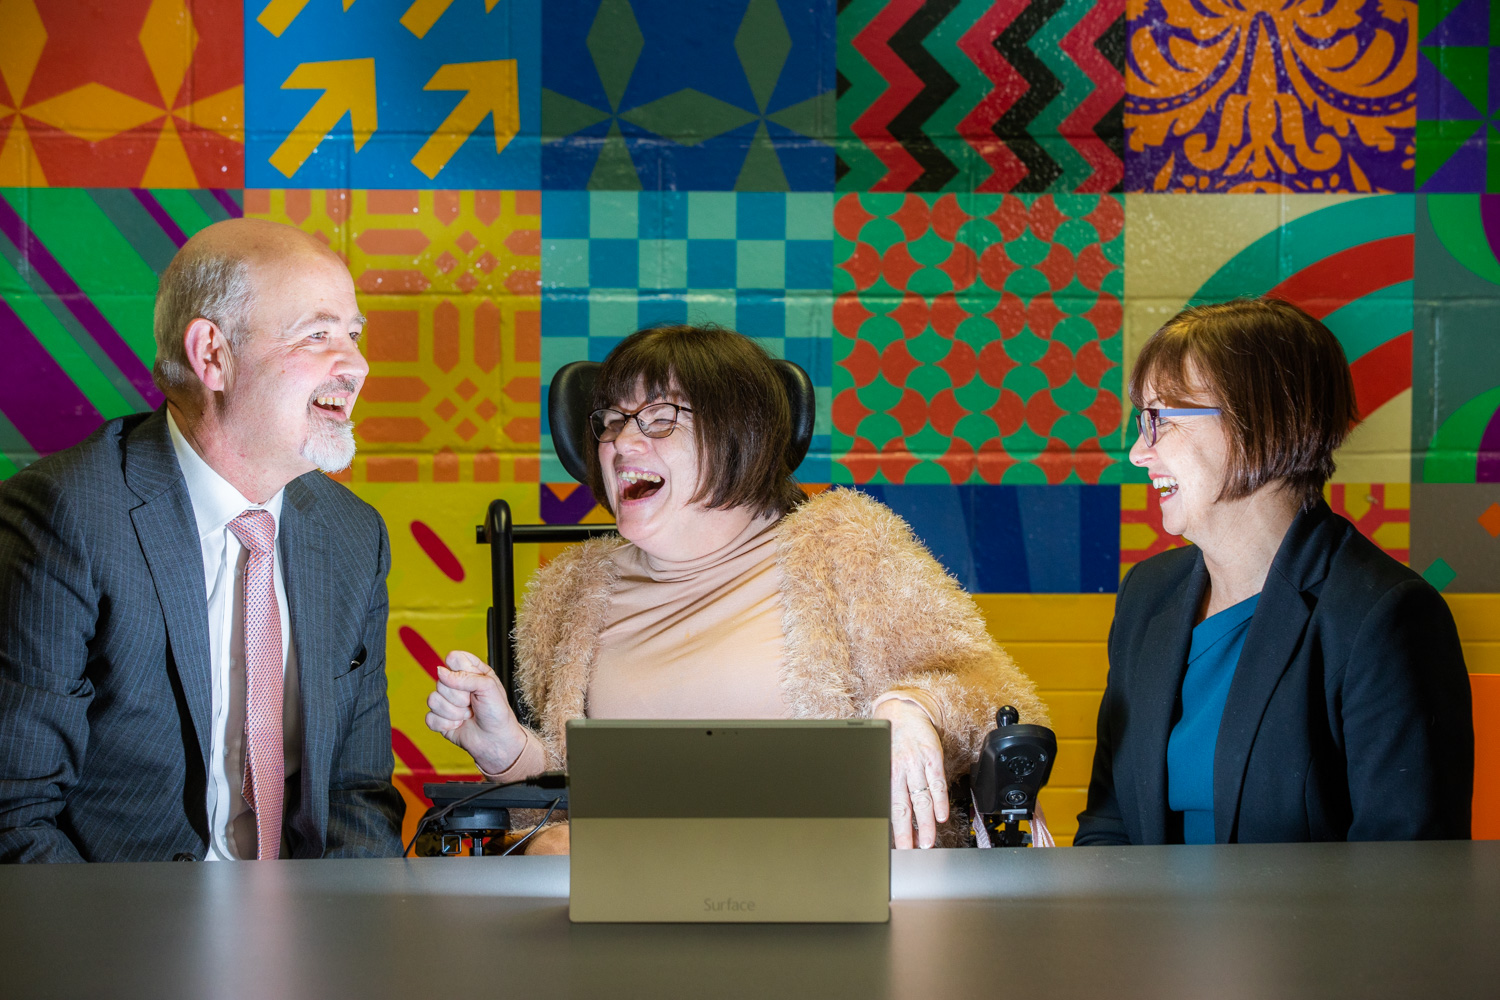 Imelda from Enable Ireland laughs with Enable Ireland CEO John O'Sullivan and Microsoft CEO Cathriona Hallahan